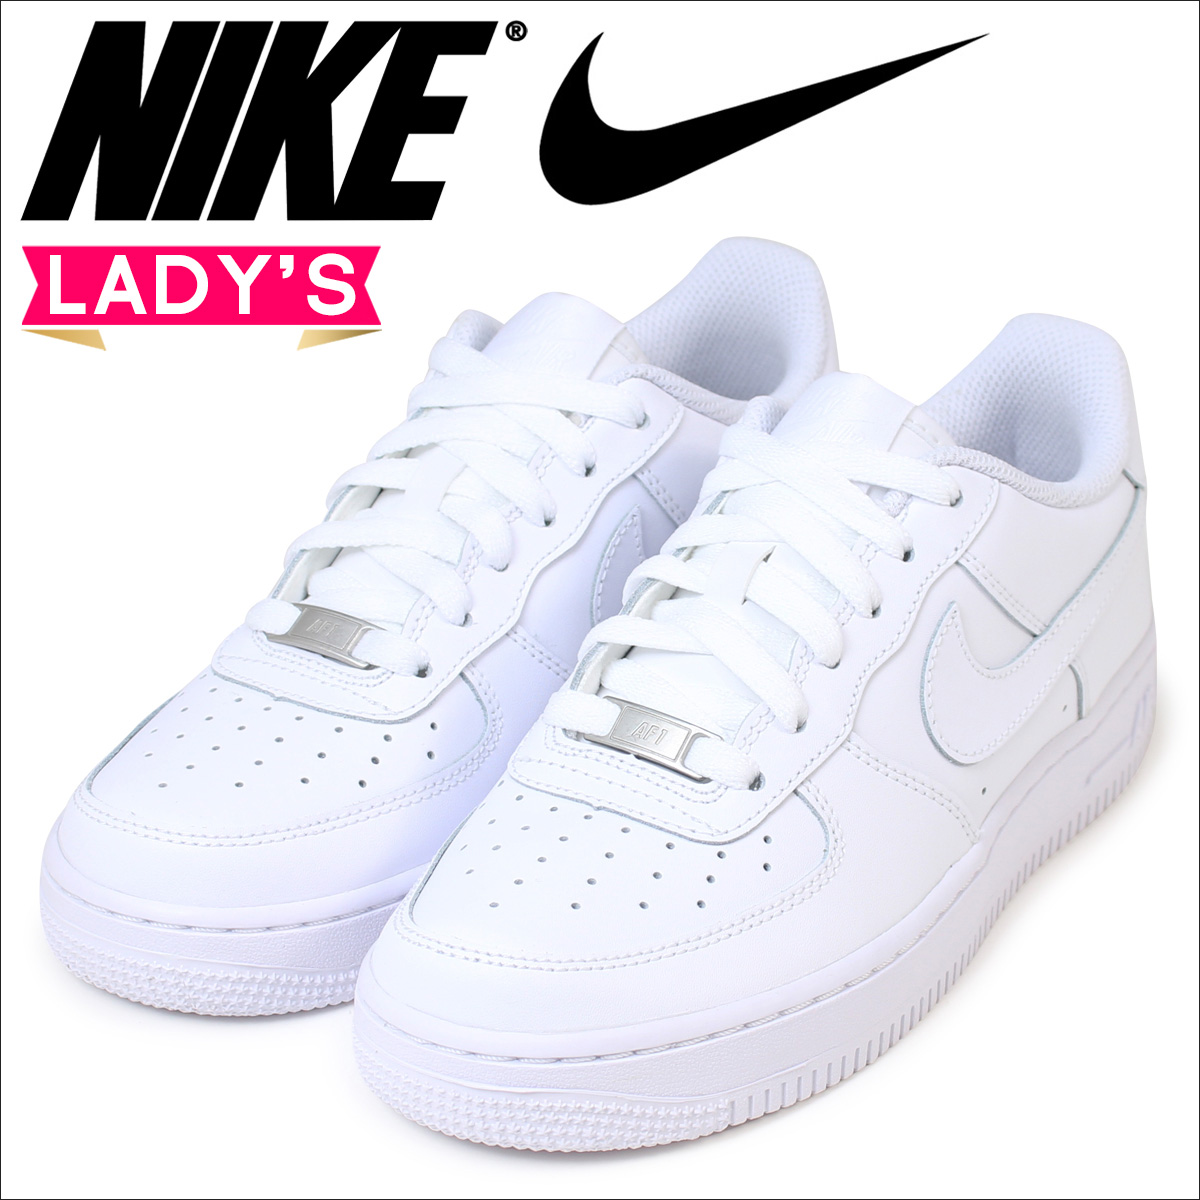 Nike Sneakers With White On Front | NetComm Wireless